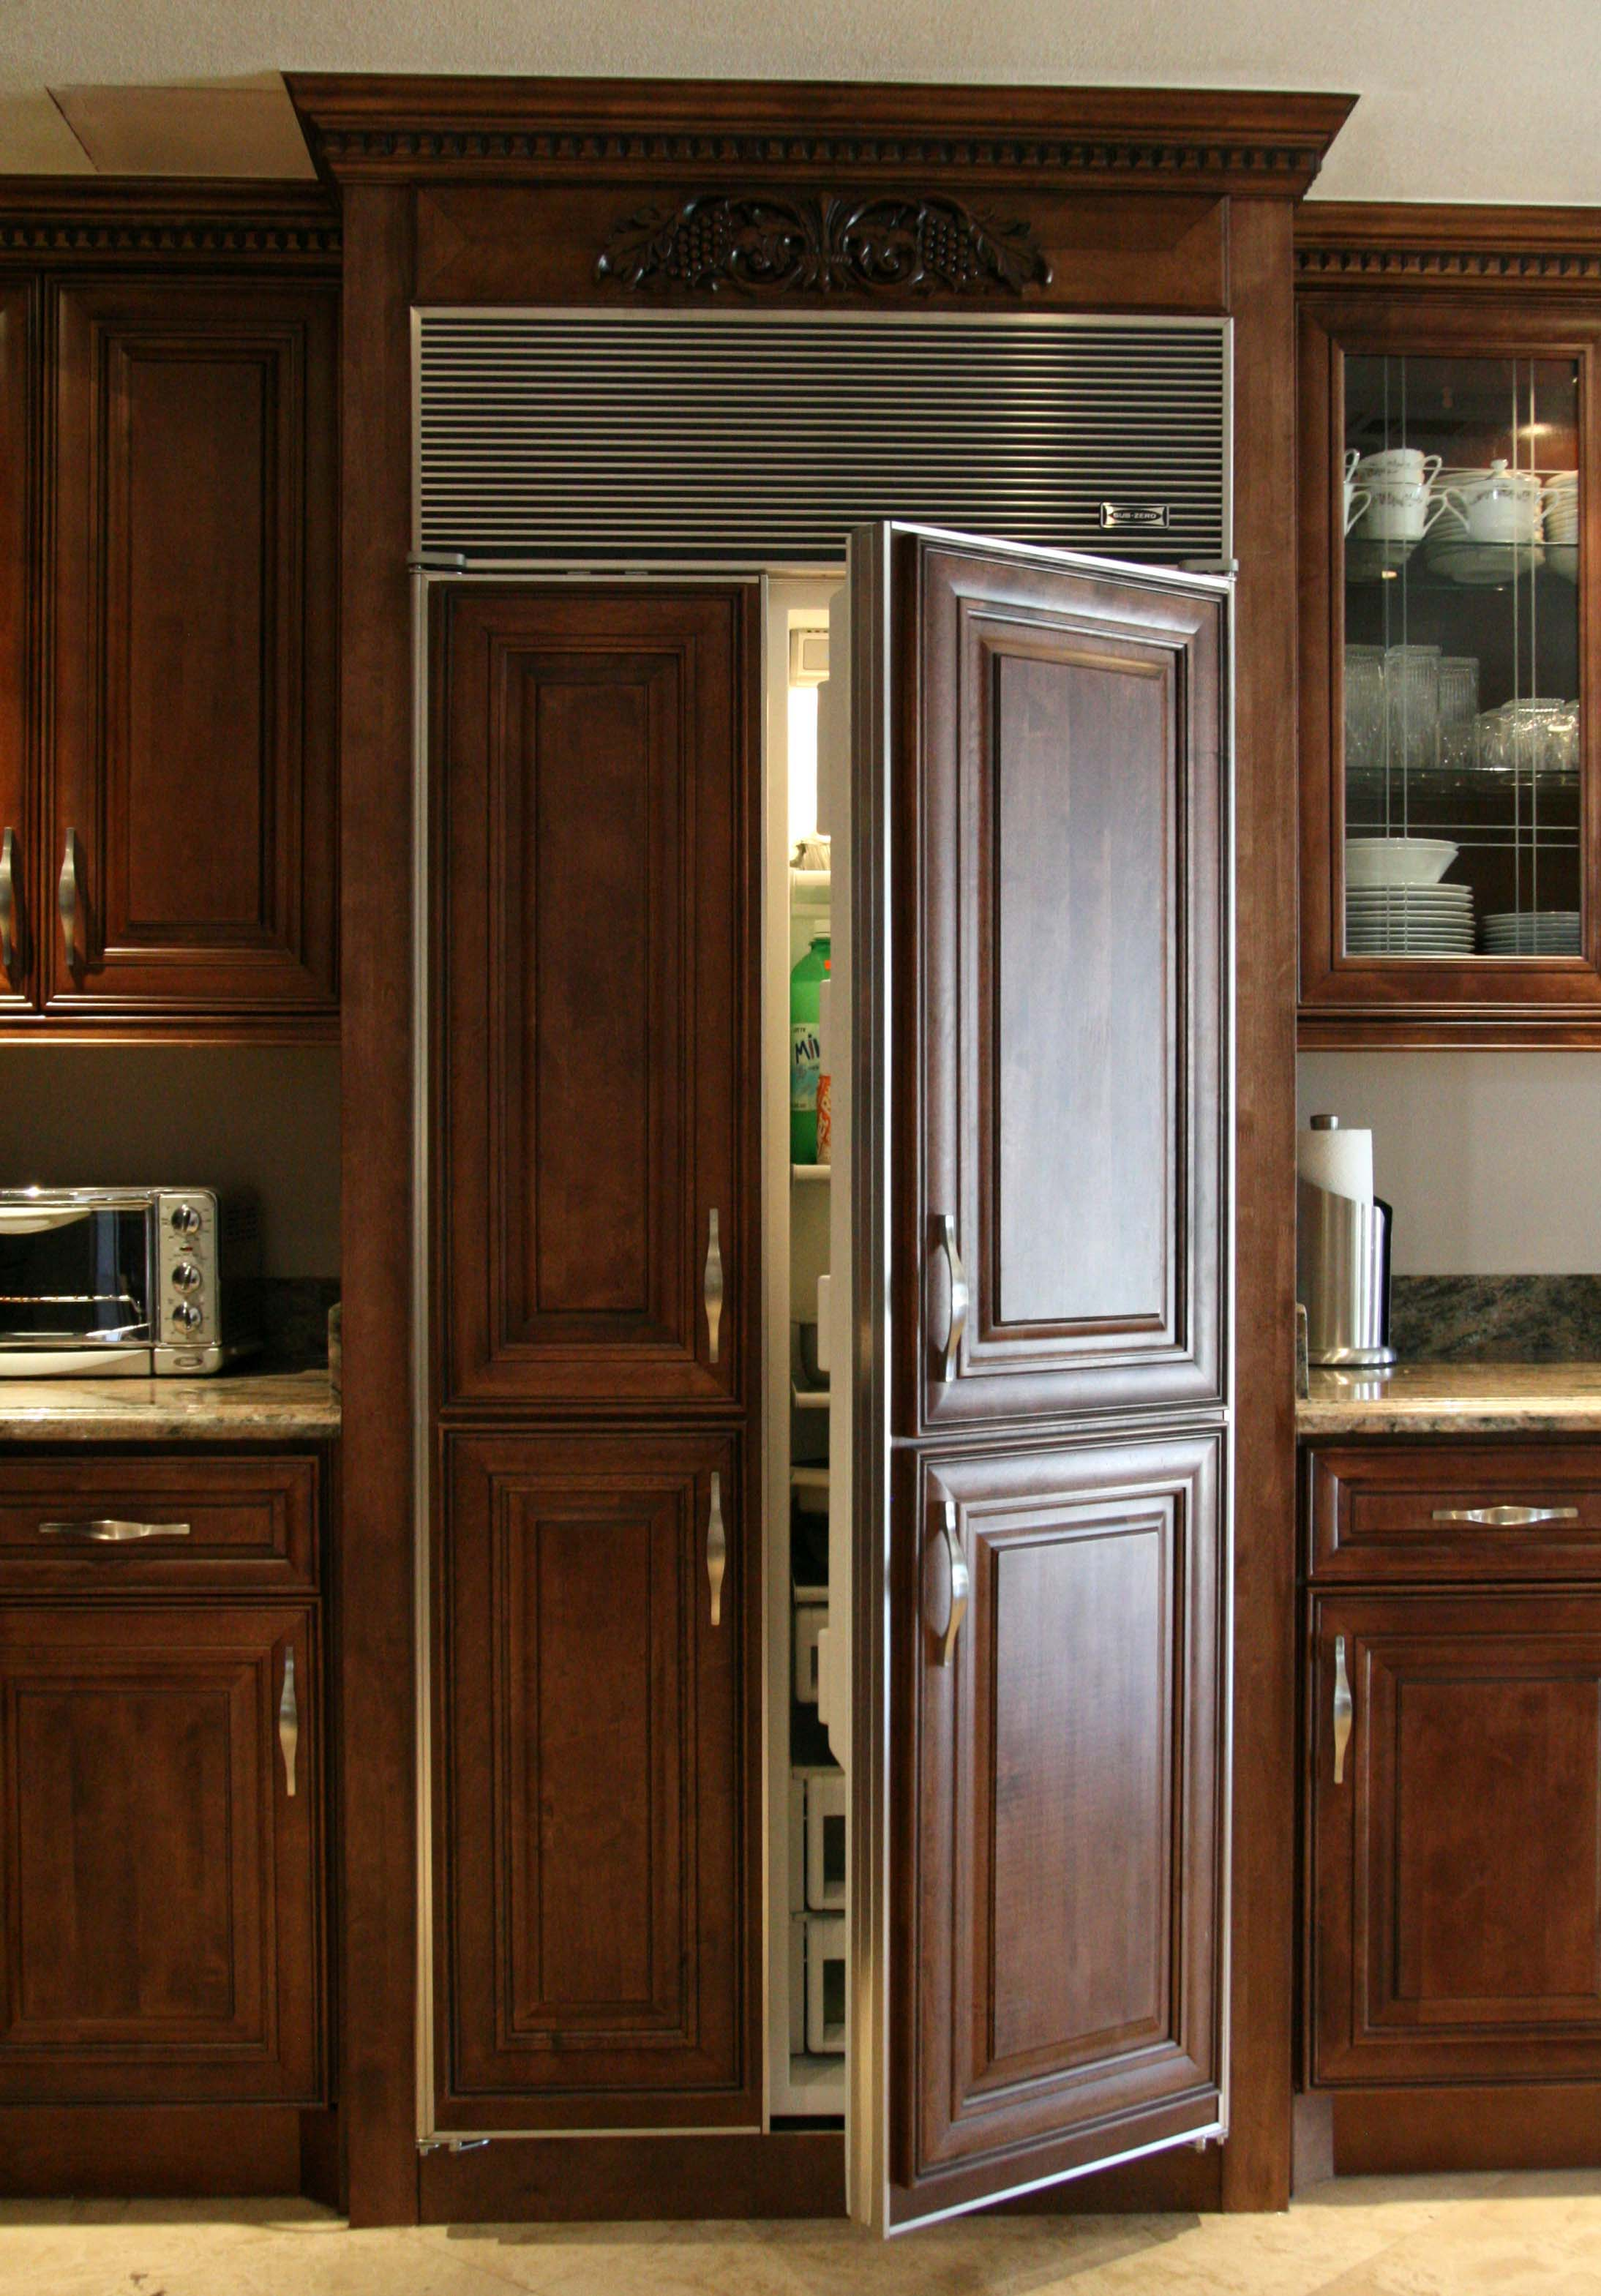 wholesale discount kitchen cabinets carlsbad northridge carmel